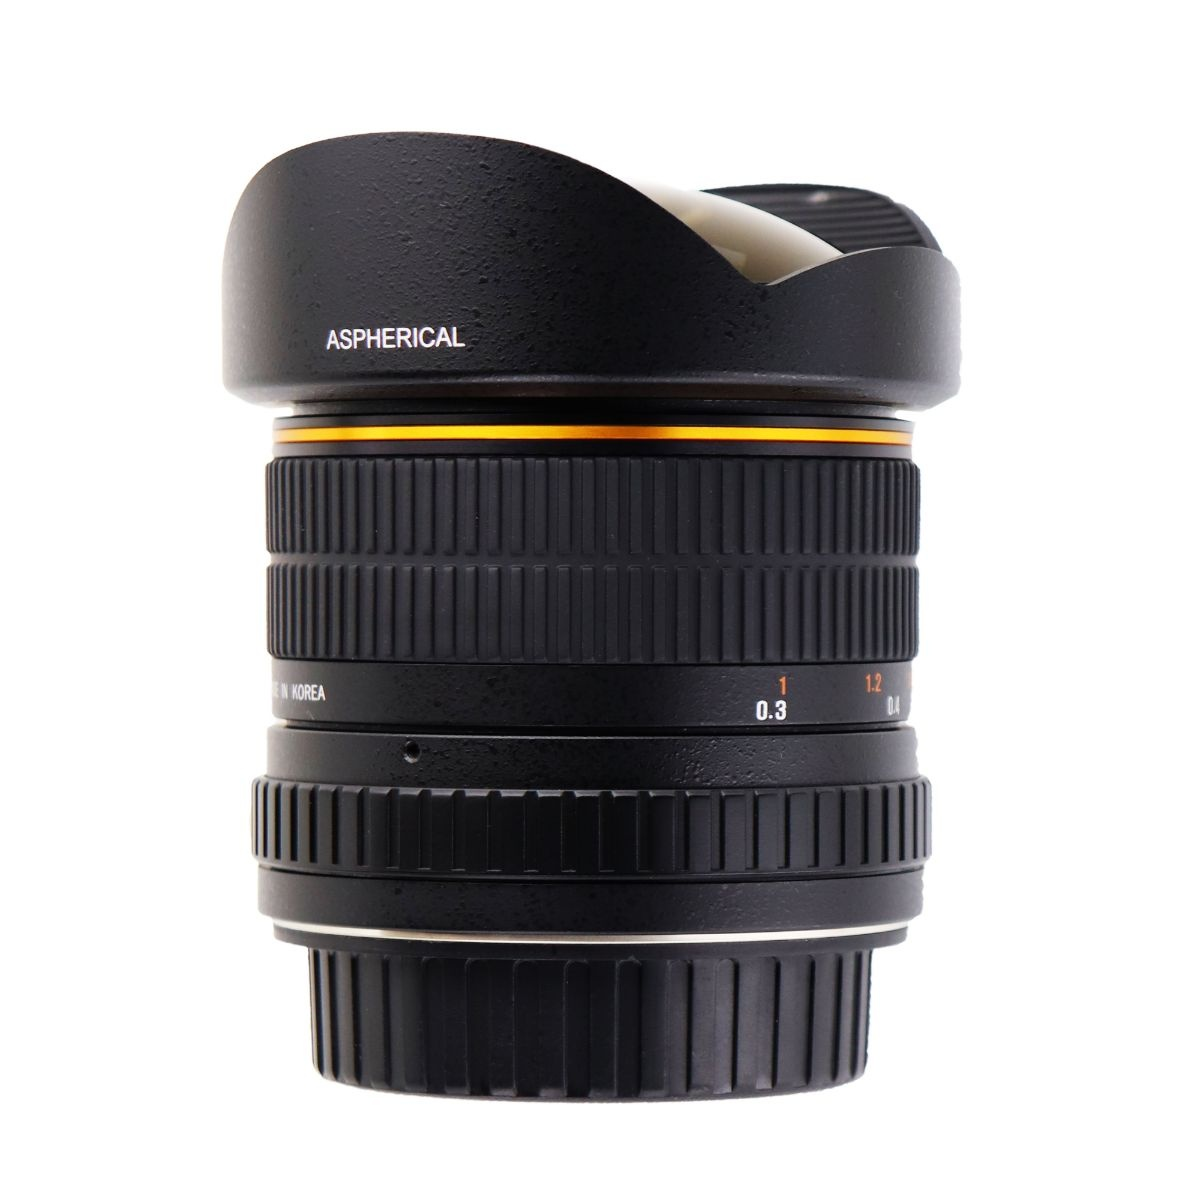 Bower SLY358C Ultra Wide-Angle 8mm f/3.5 Fisheye Lens for Canon